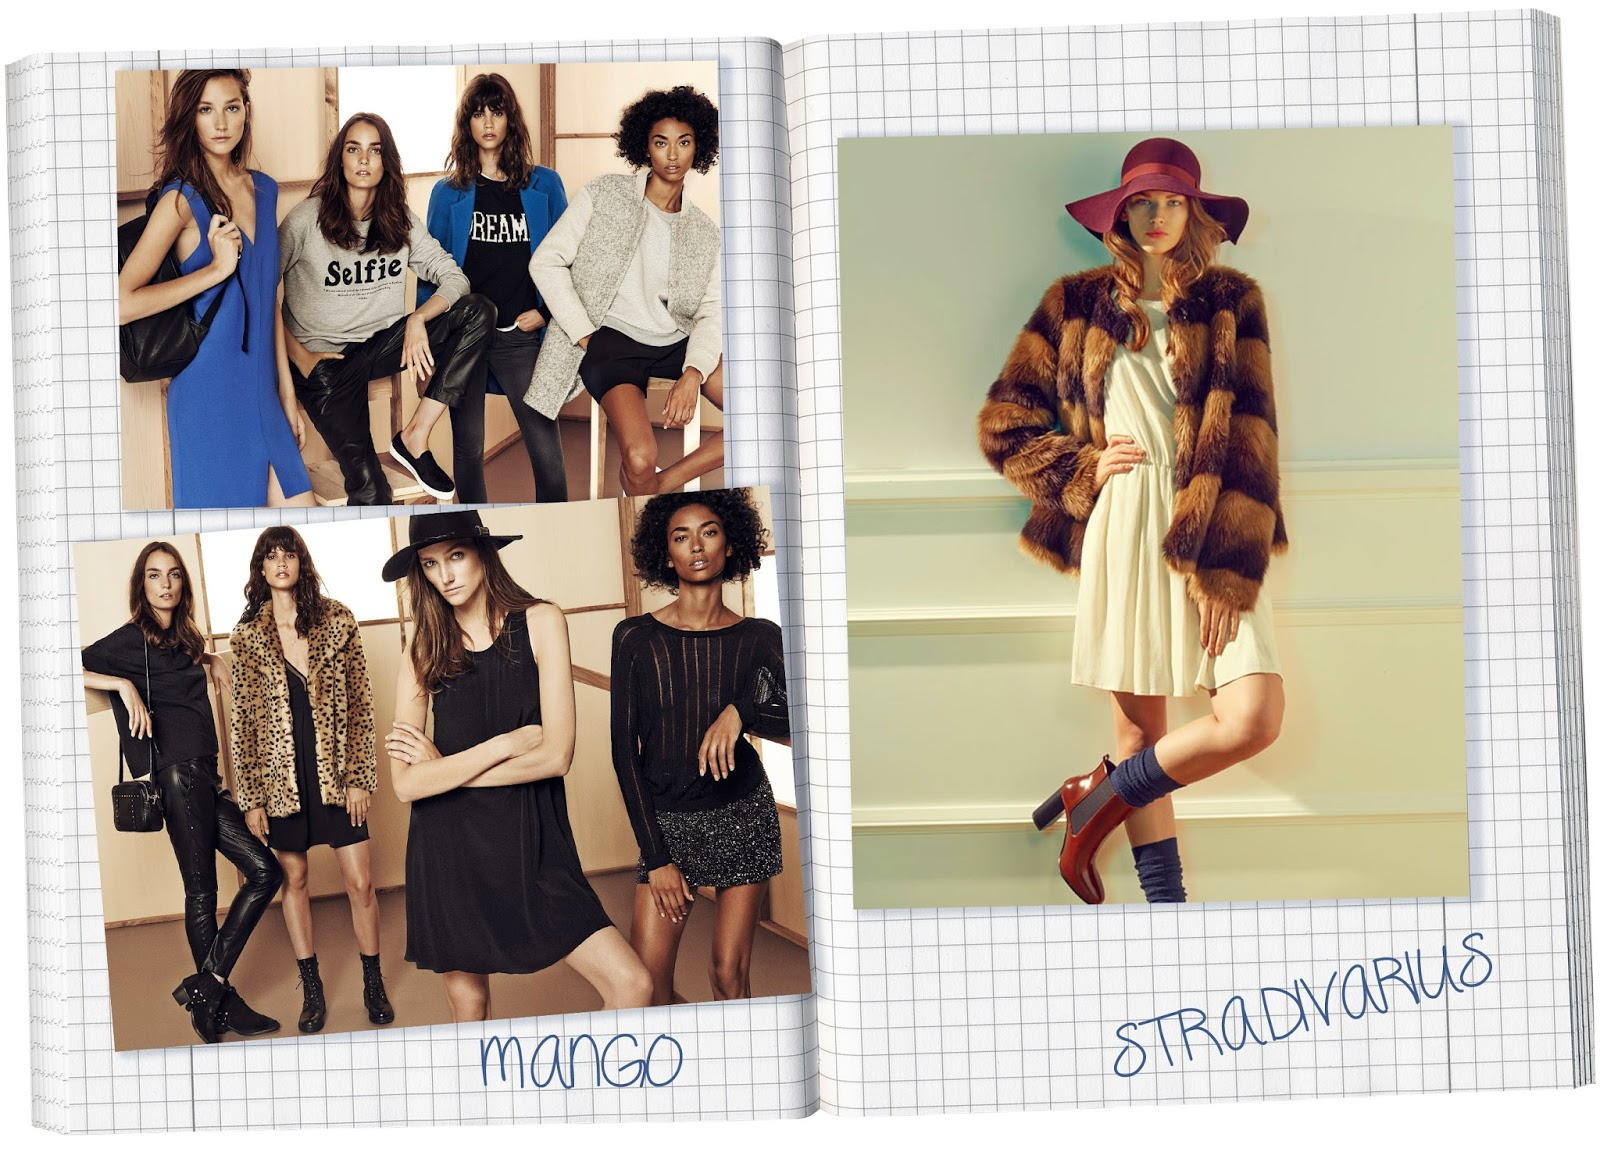 photo-lookbook-avance-colecciones-OI14-mango-stradivarius